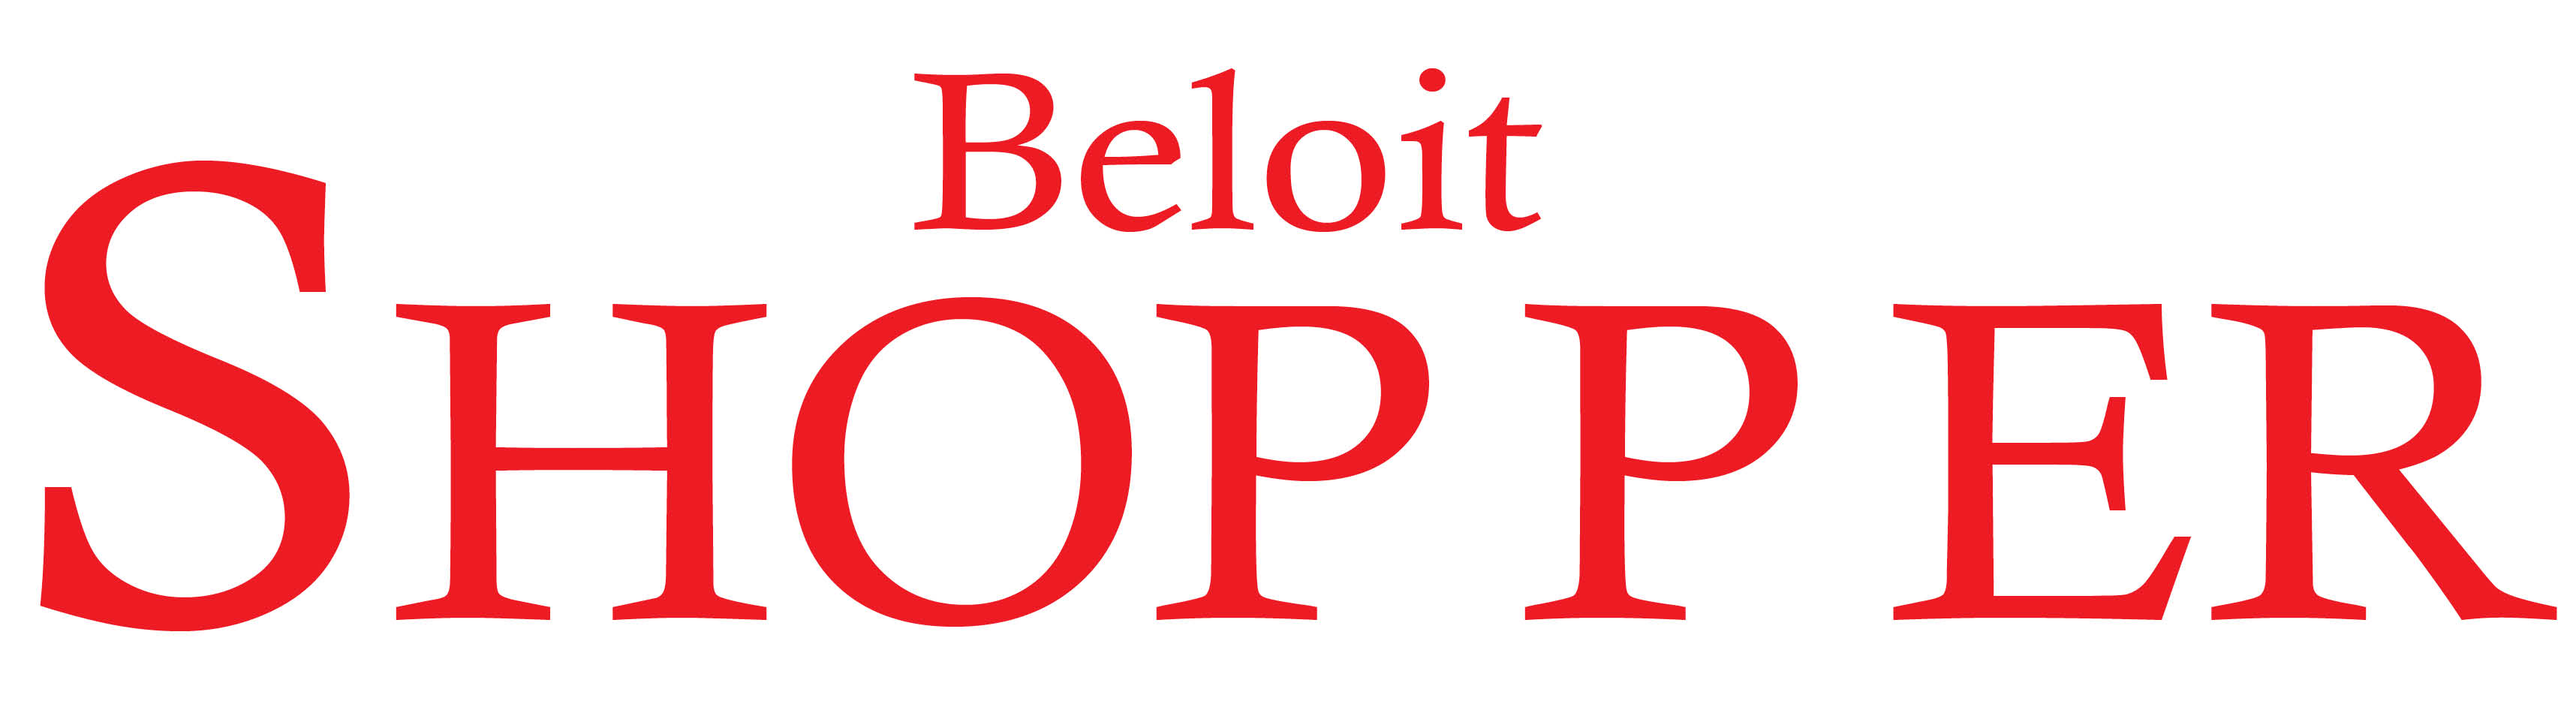 6/22/17 Beloit Shopper